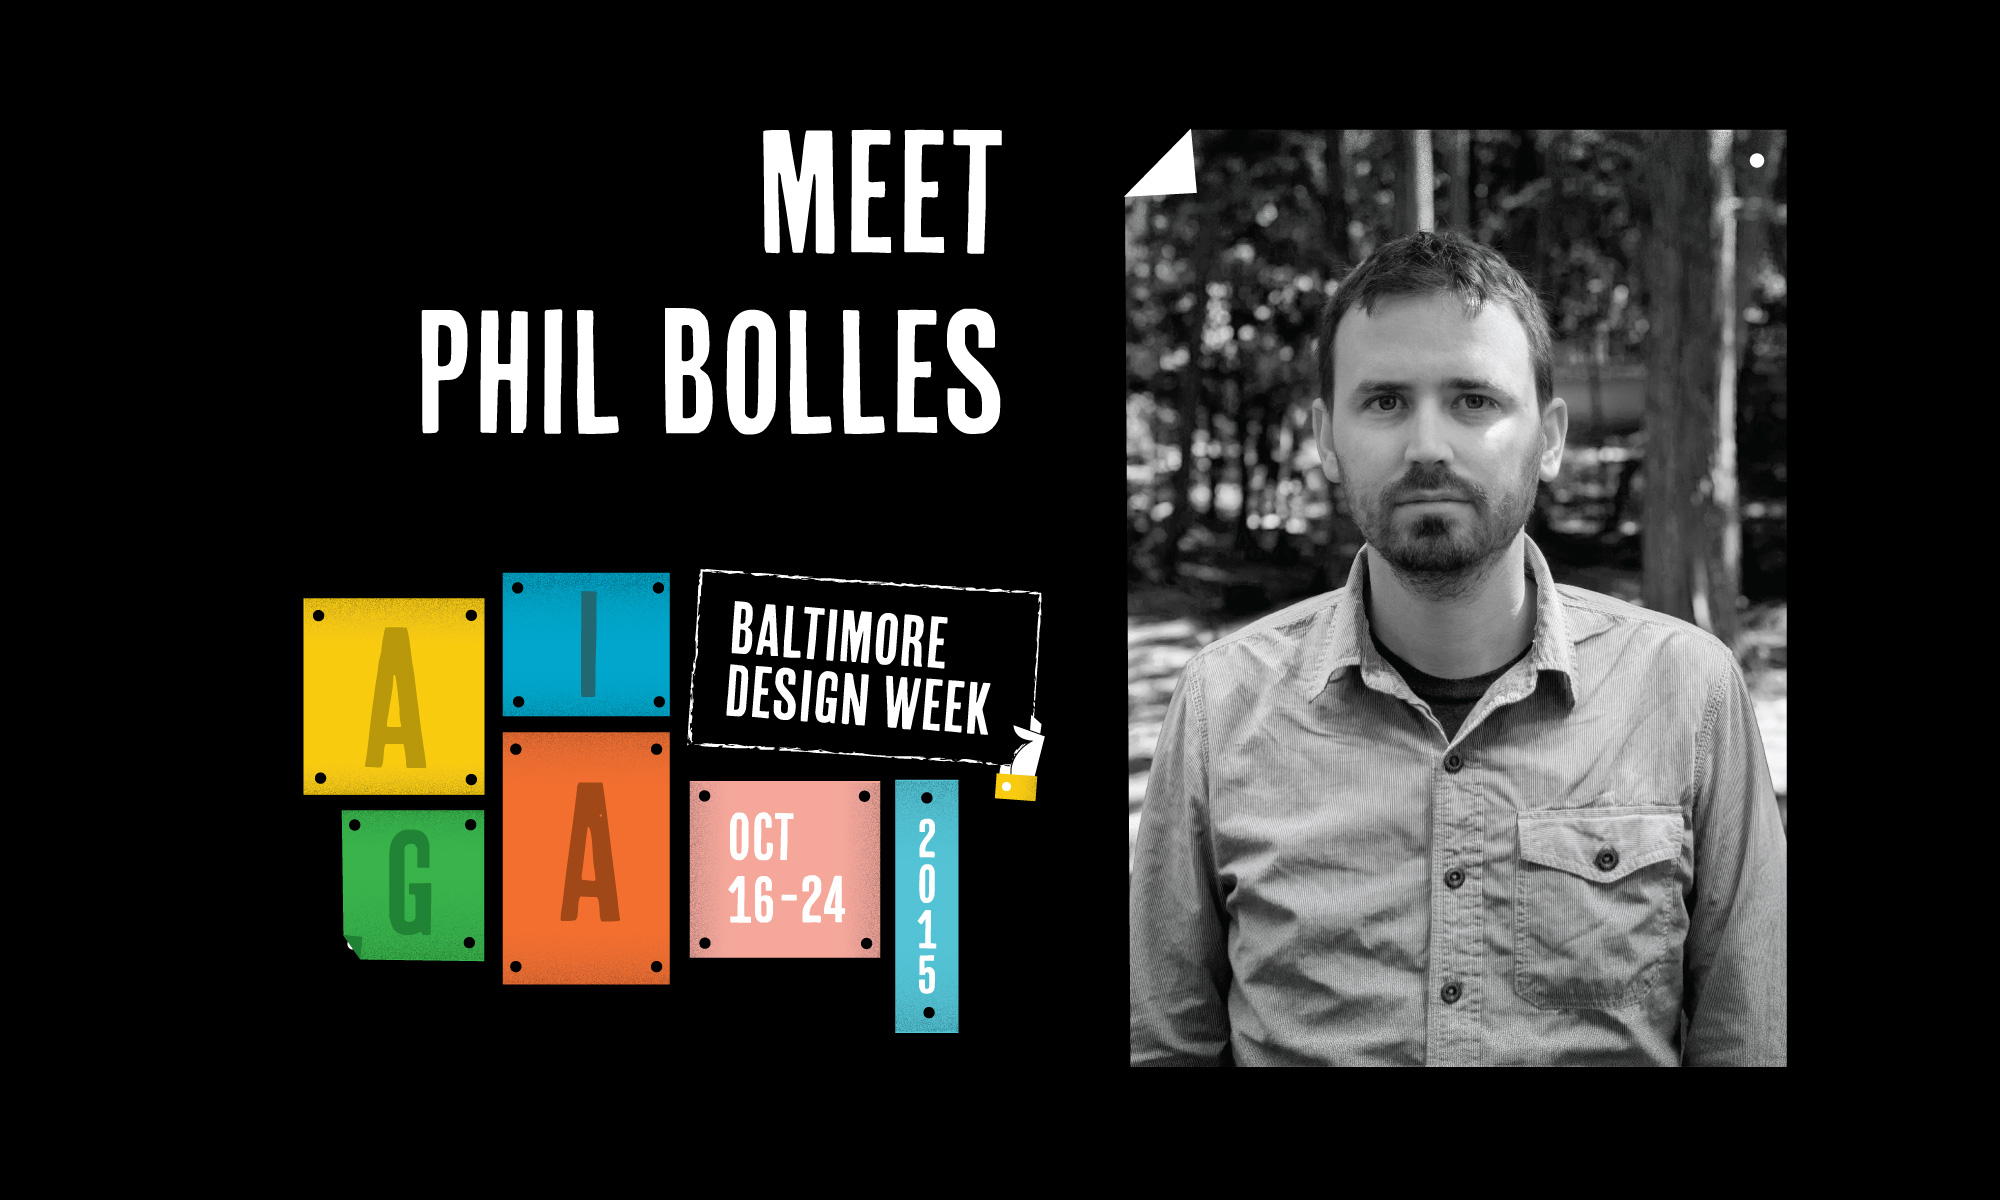 Phil Bolles, multi-disciplinary designer and educator